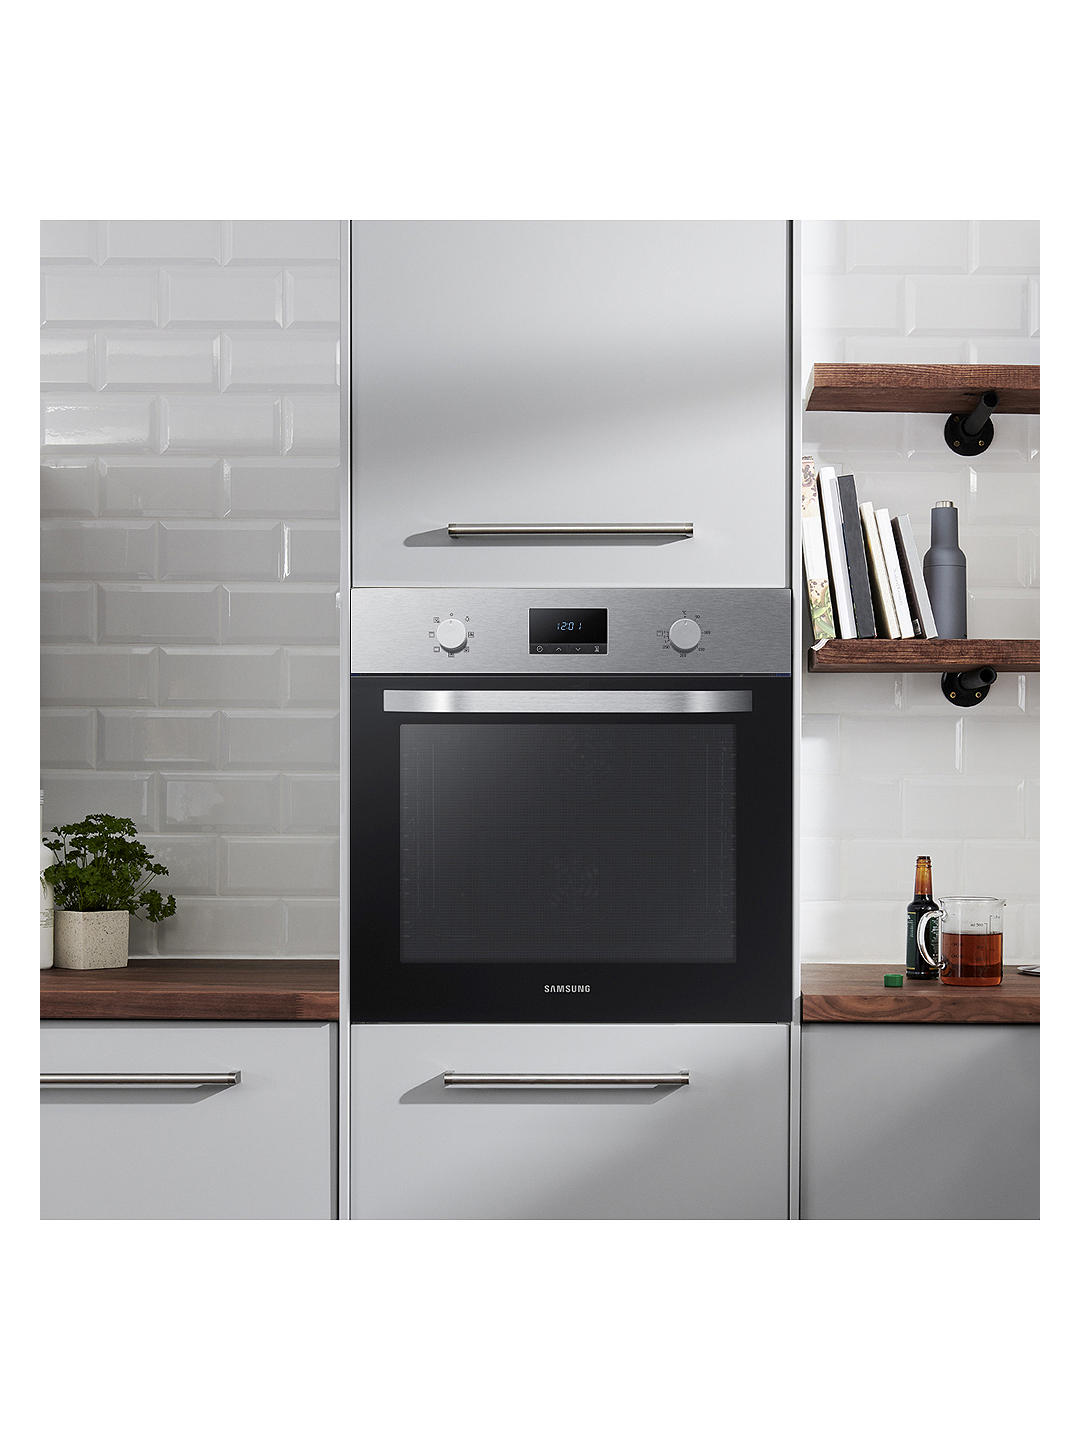 Buy Samsung NV70K1340BS/EU Built-In Single Oven, Stainless Steel Online at johnlewis.com